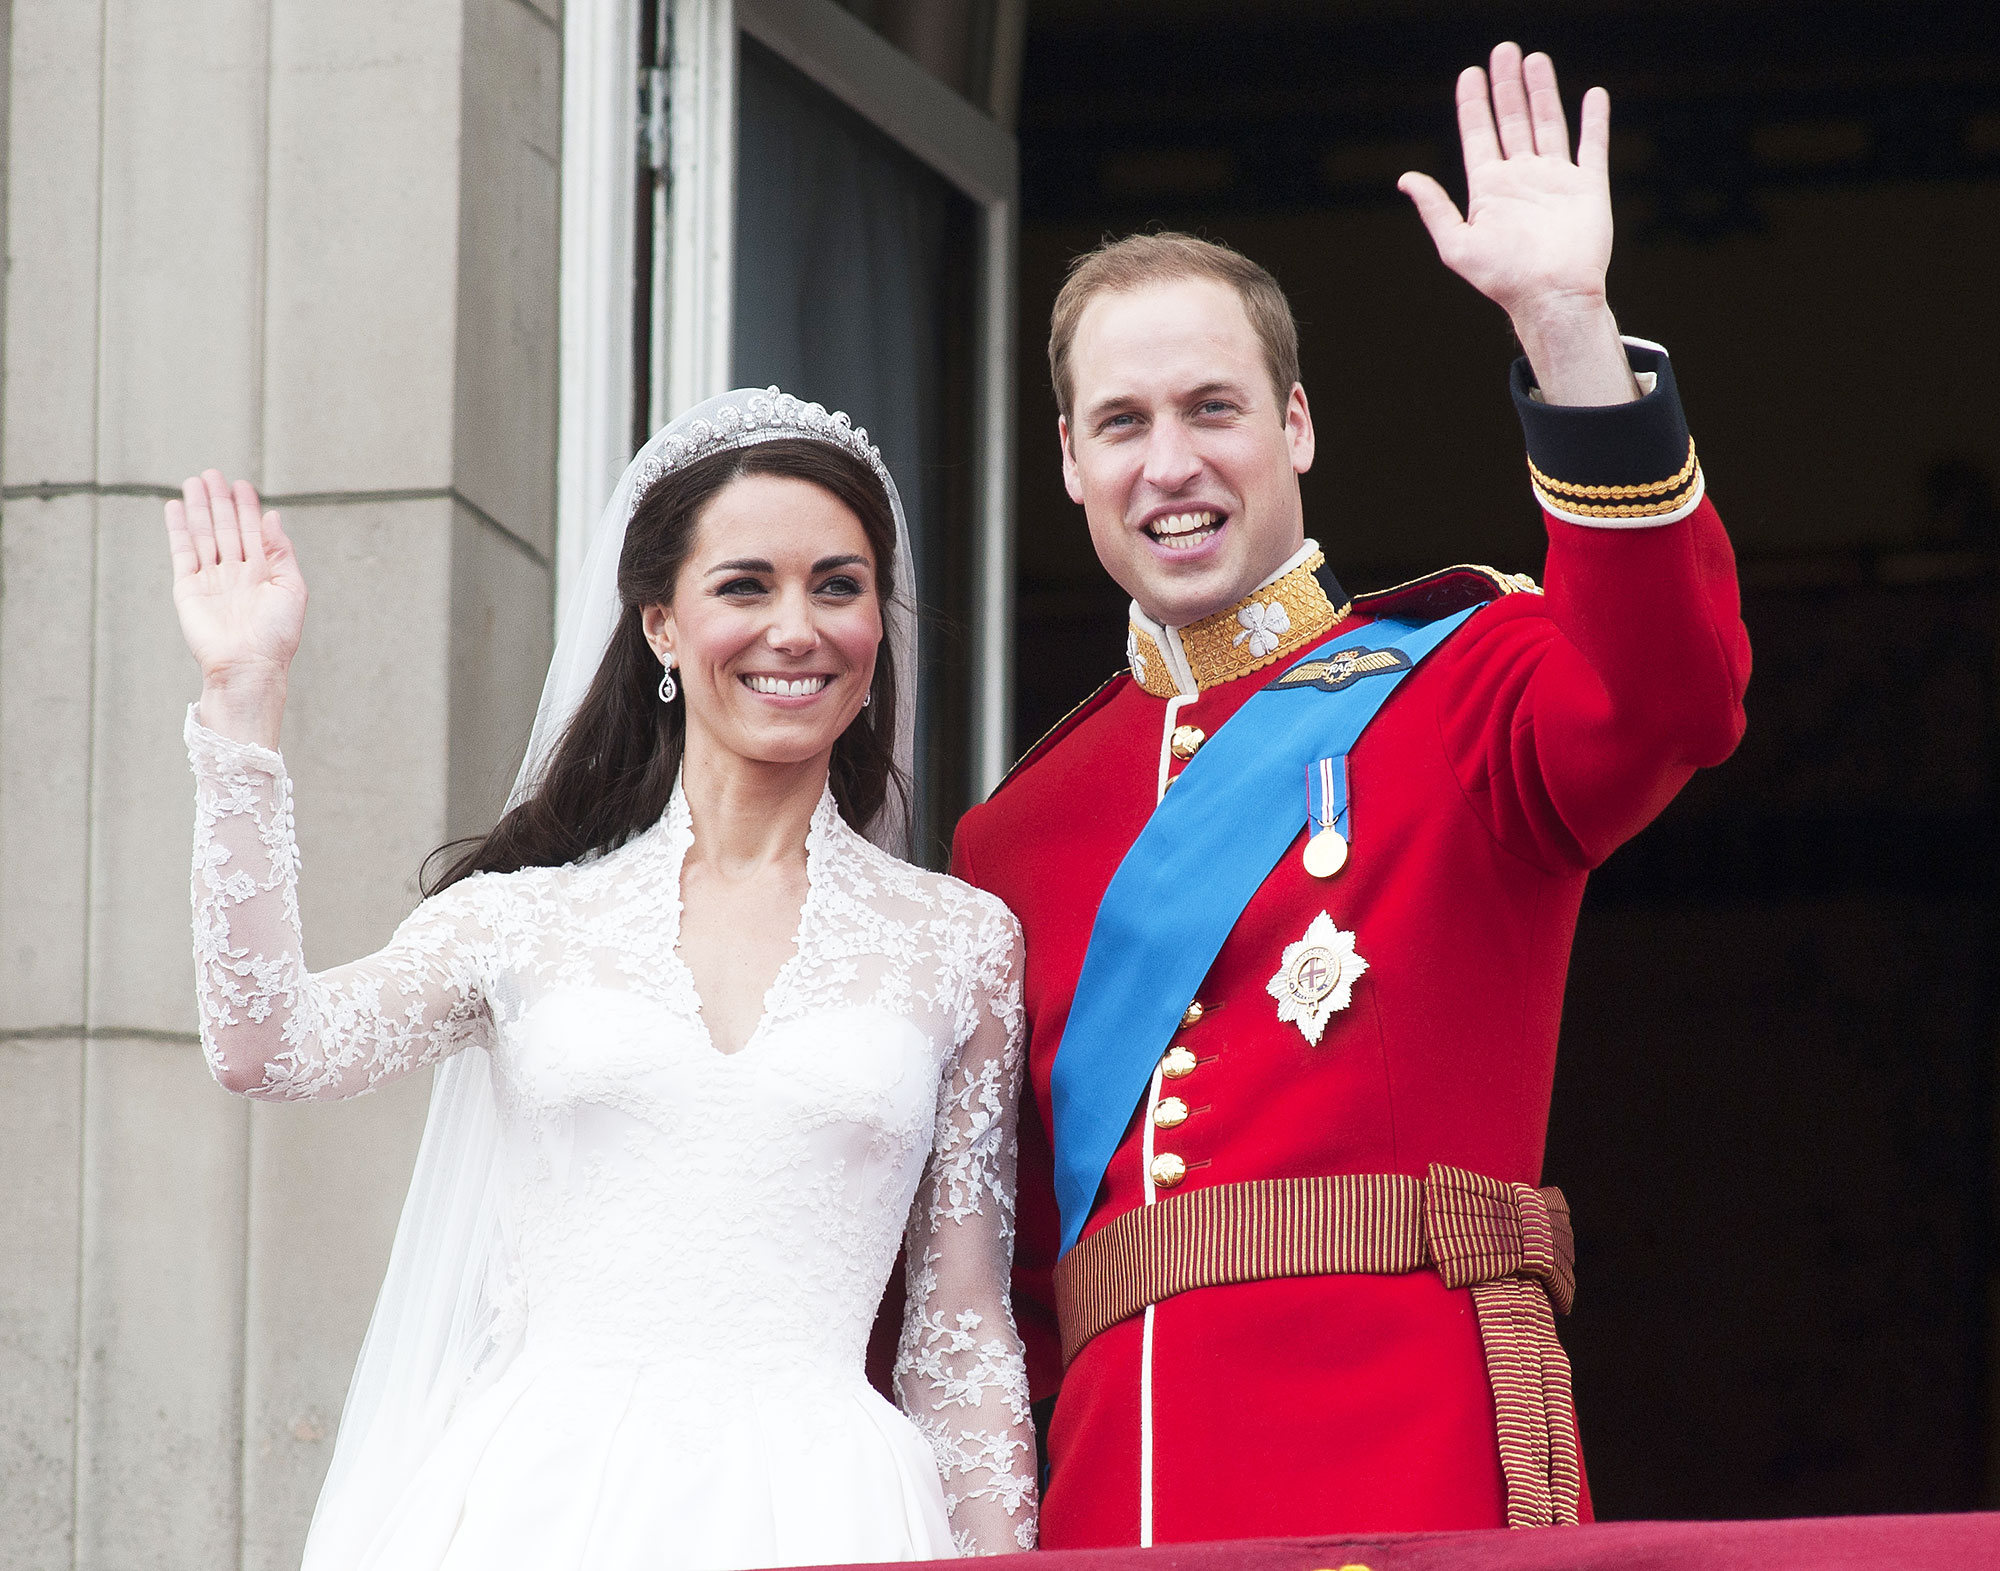 Prince William and Duchess Kates Wedding Security Was a Big Piece of Work